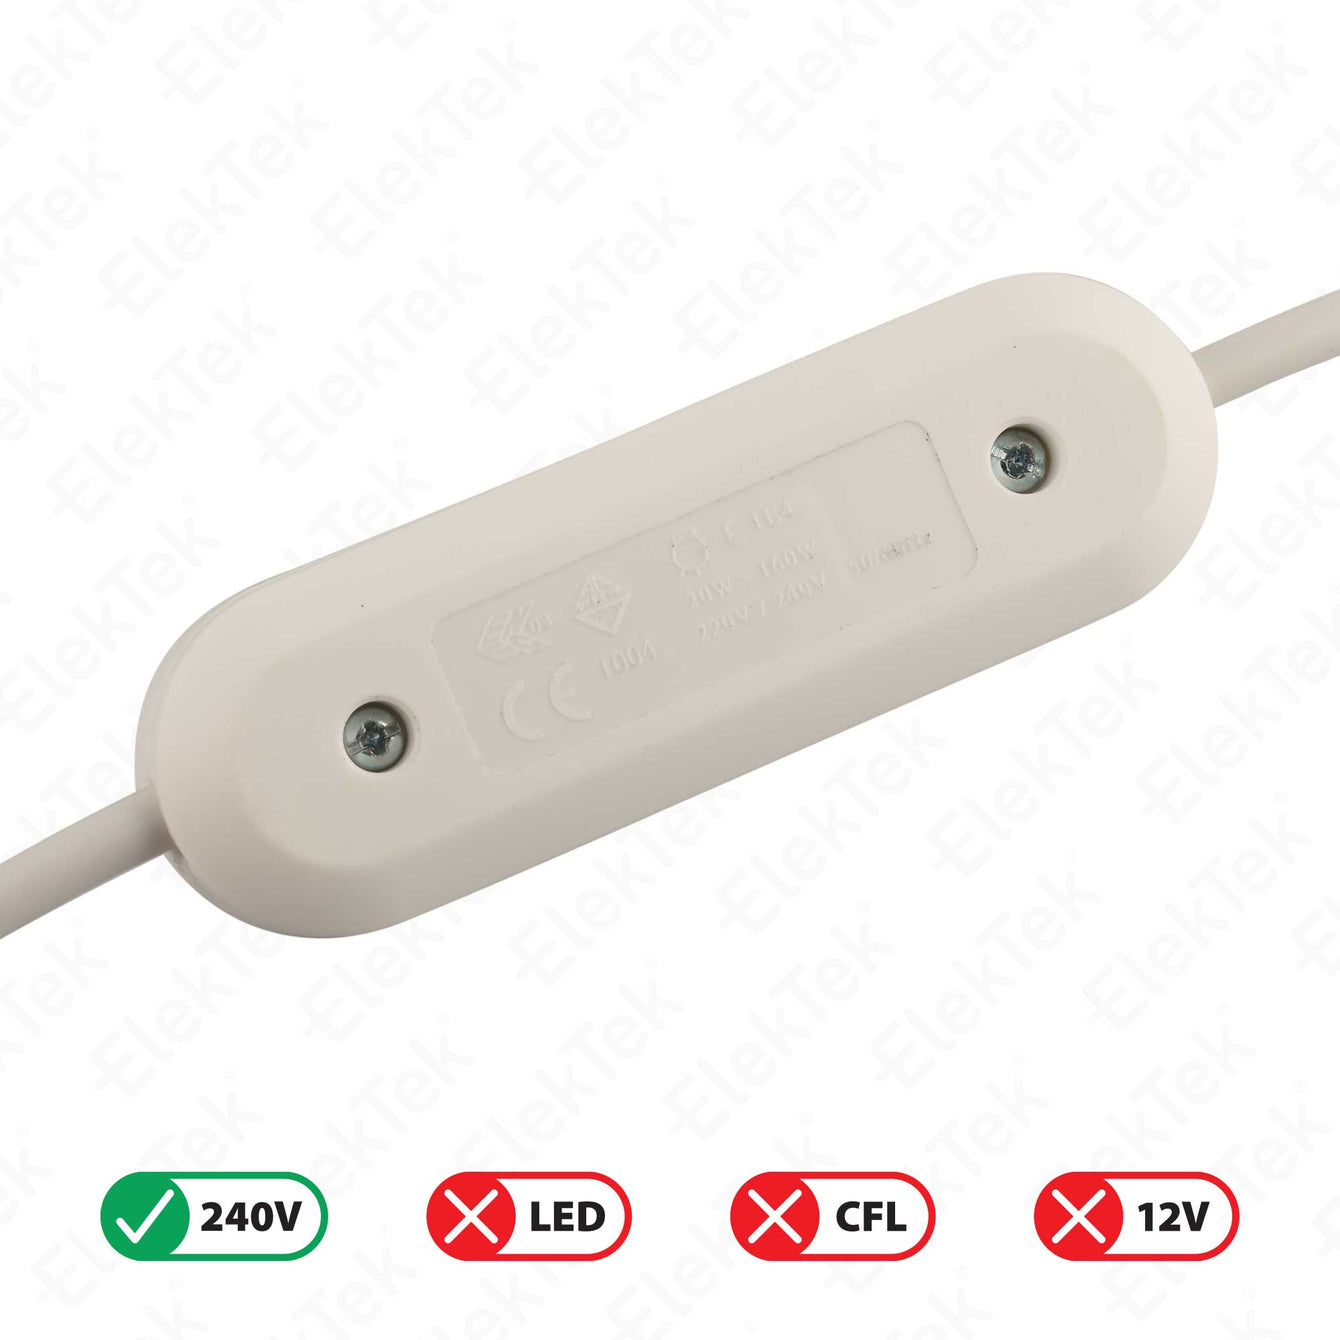 ElekTek In Line Rotary Dimmer Switch Rated 20-160w 240v AC 3 Core Suitable For Incandescent Lamps and Bulbs Colours Gold